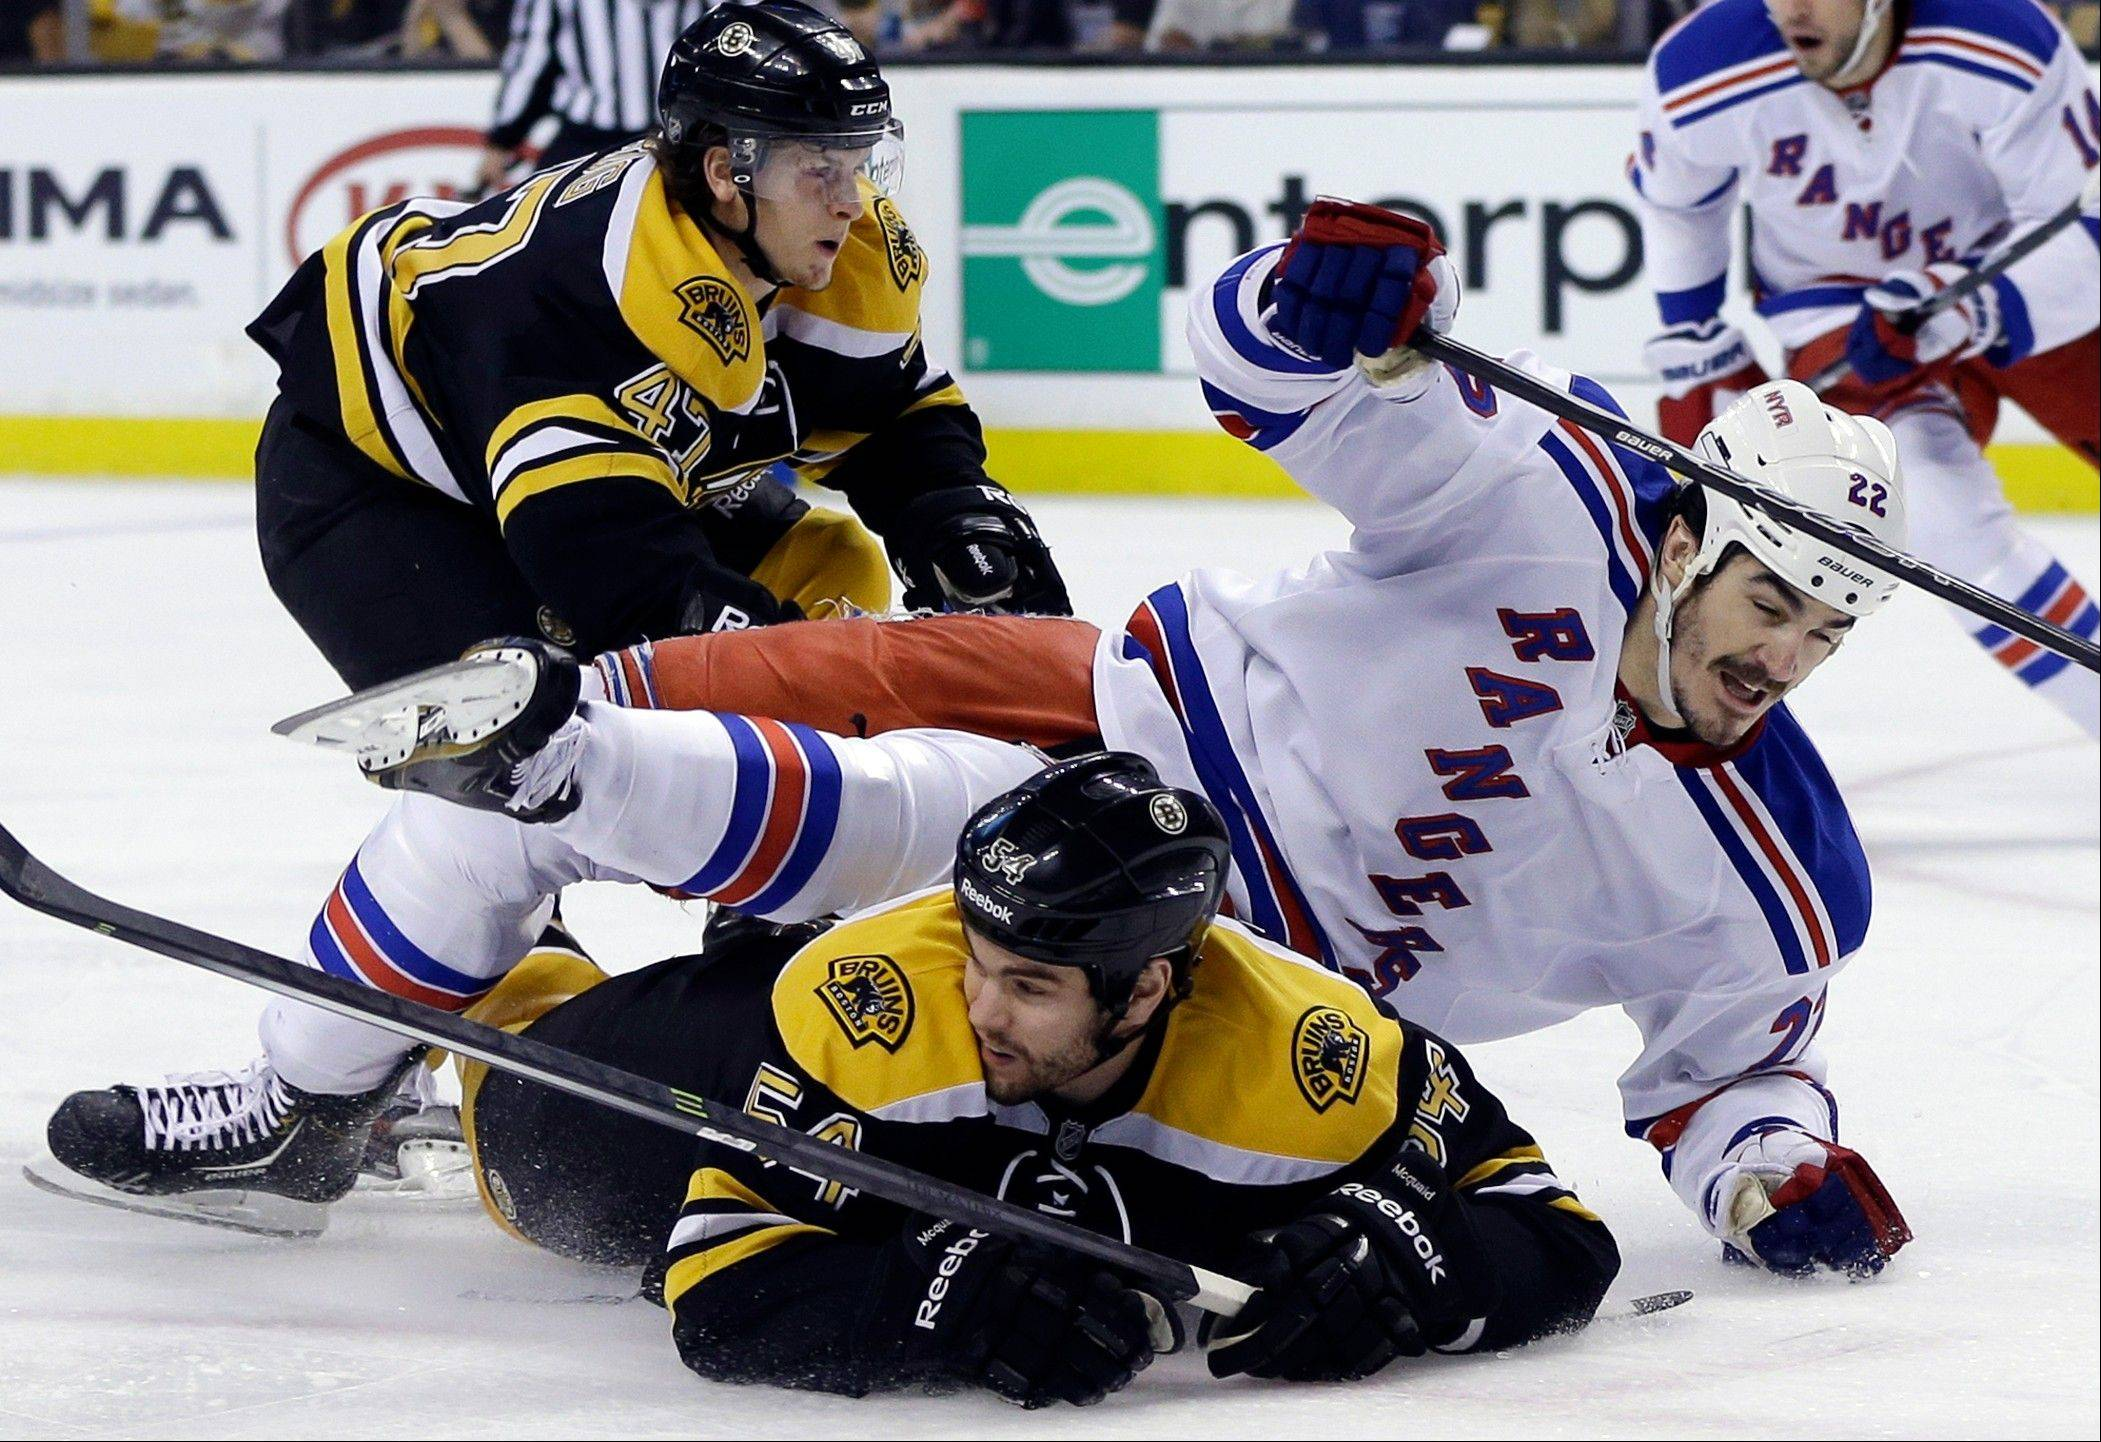 New York Rangers center Brian Boyle (22) goes down to the ice as he chases the puck against Boston Bruins defensemen Adam McQuaid (54) and Torey Krug (47) during the first period in Game 2 of the NHL Eastern Conference semifinal hockey playoff series in Boston, Sunday, May 19, 2013.